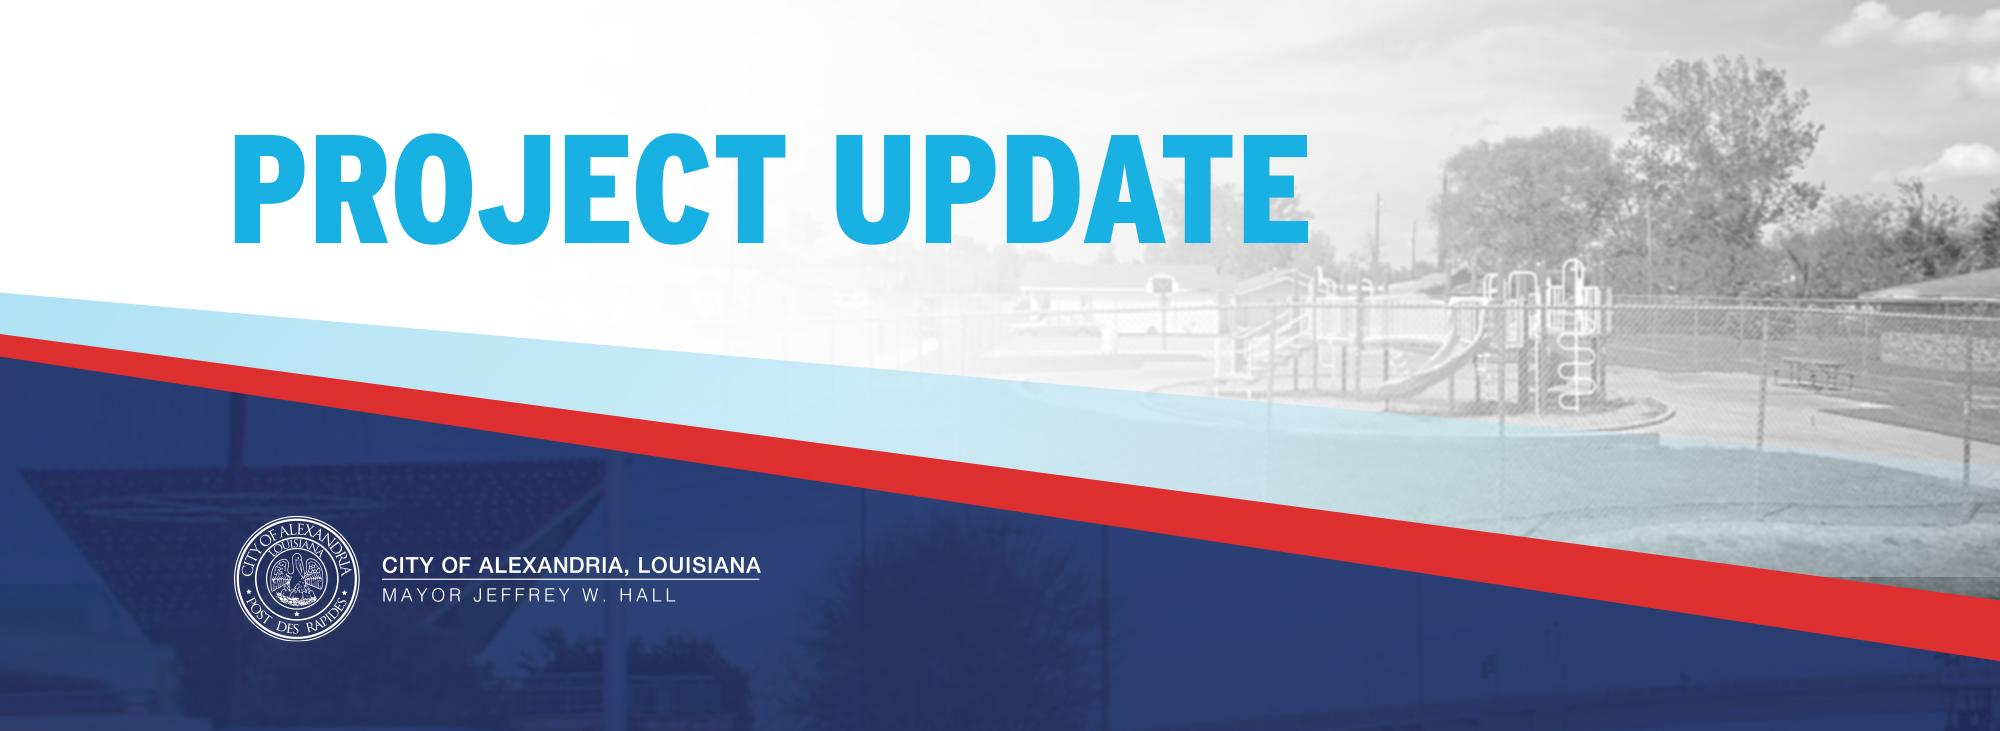 The City of Alexandria has provided a page for the public to be able to see what projects are under way and keep abreast of their progress throughout the process.